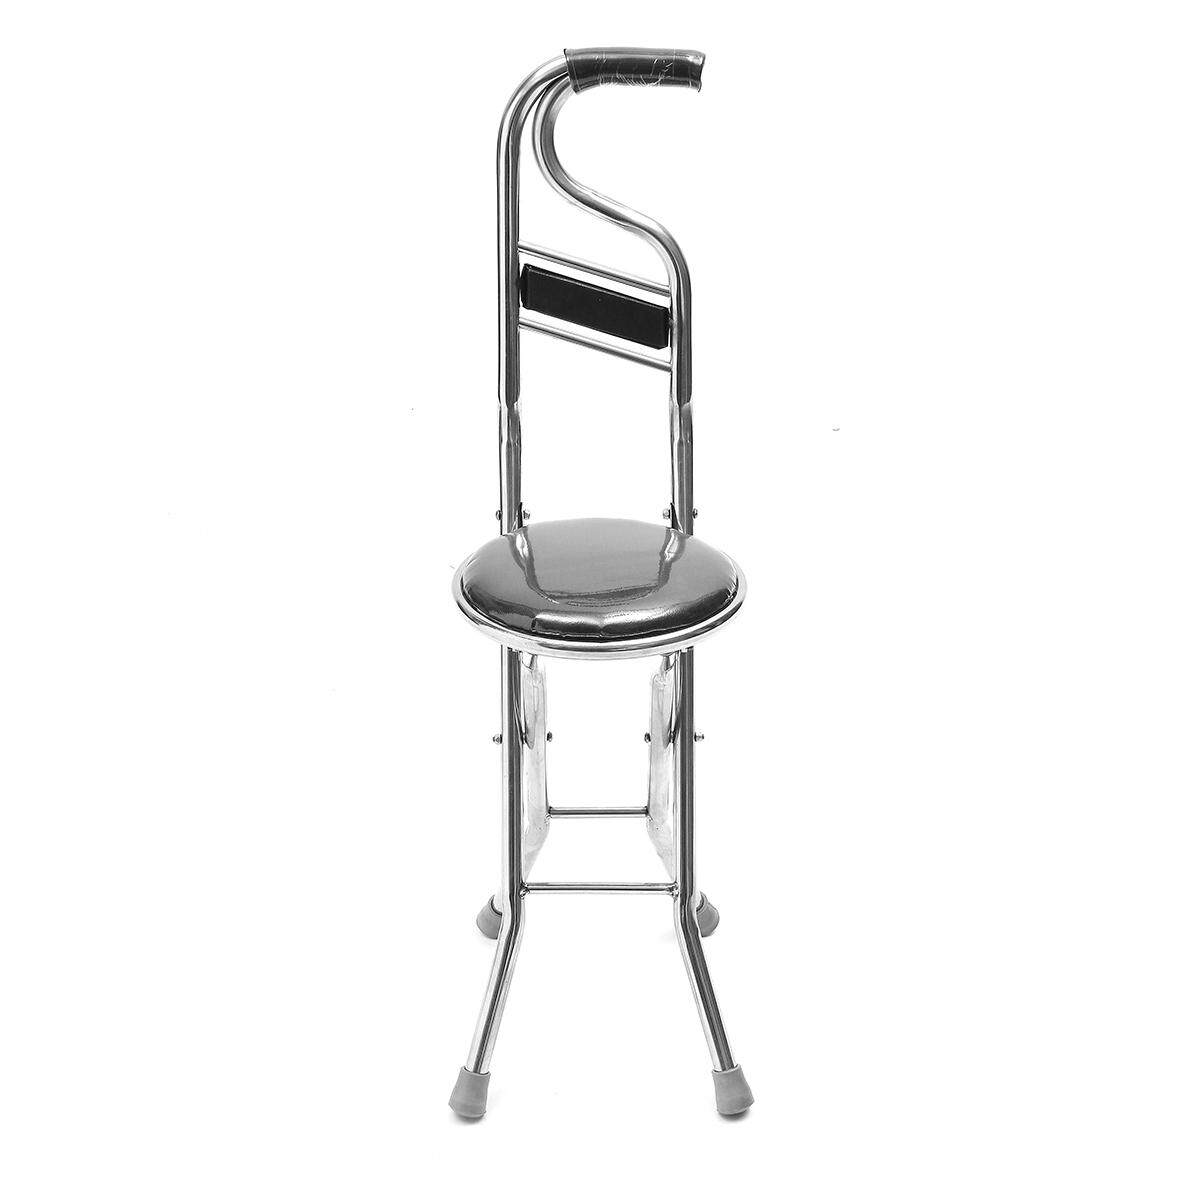 【Free Shipping + Flash Deal】Stainless Steel Portable Folding Walking Stick Chair Seat Stool Travel Cane # Black